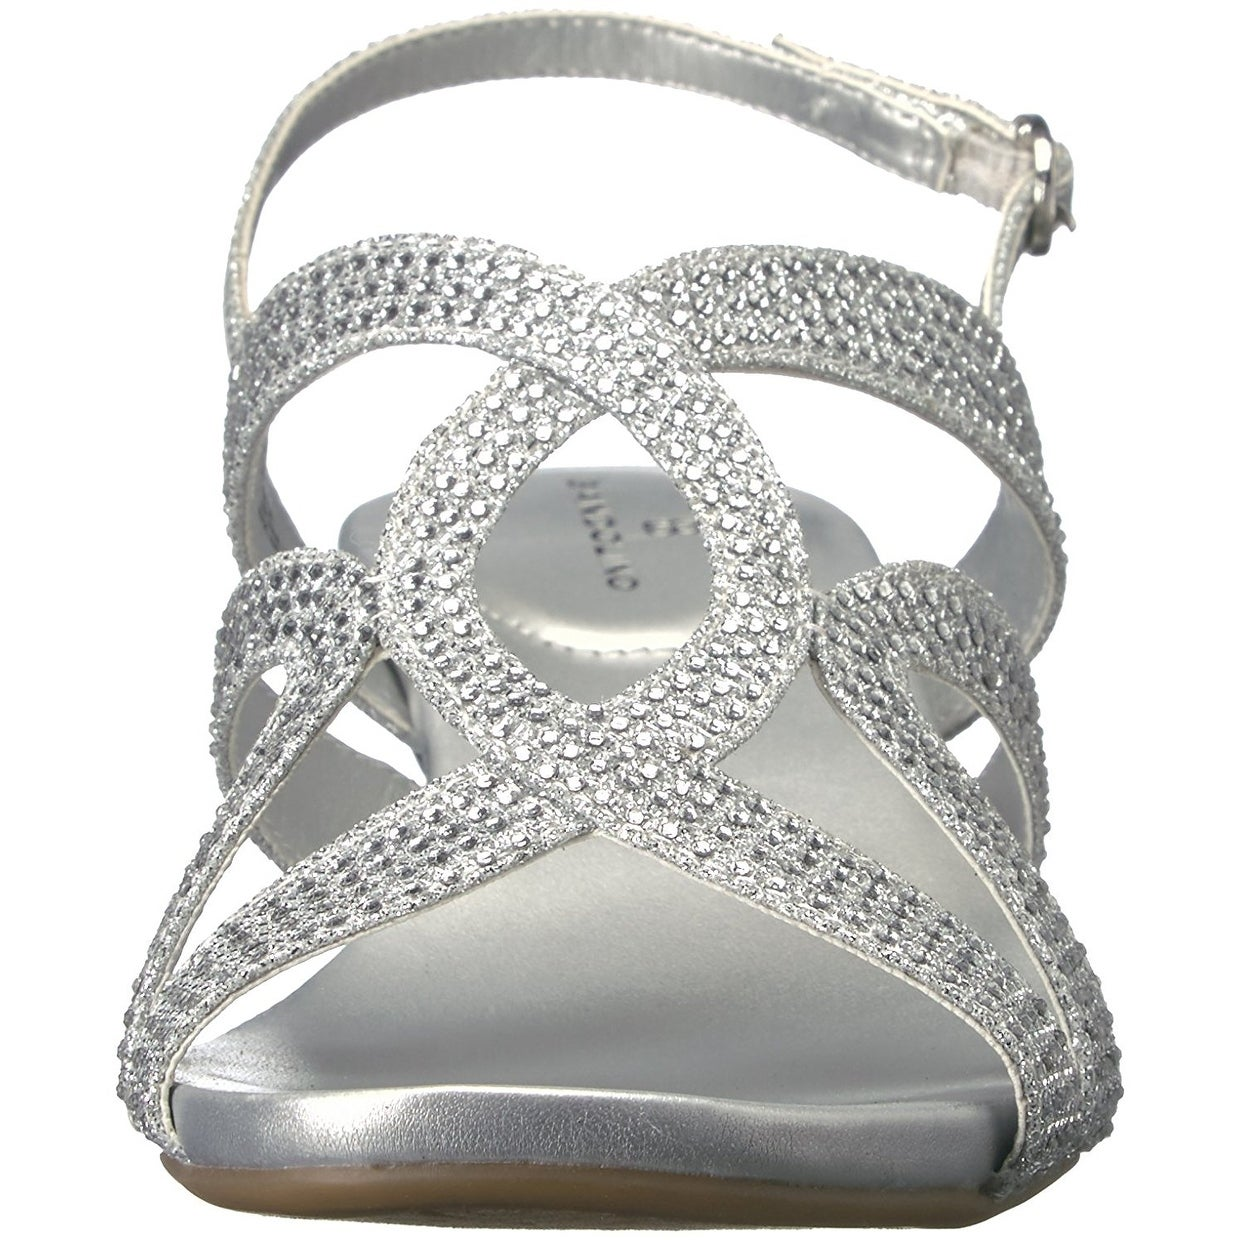 b3d9706599531 Shop Bandolino Womens GoMeisa Open Toe Casual Slingback Sandals - Free  Shipping On Orders Over  45 - Overstock.com - 19691325